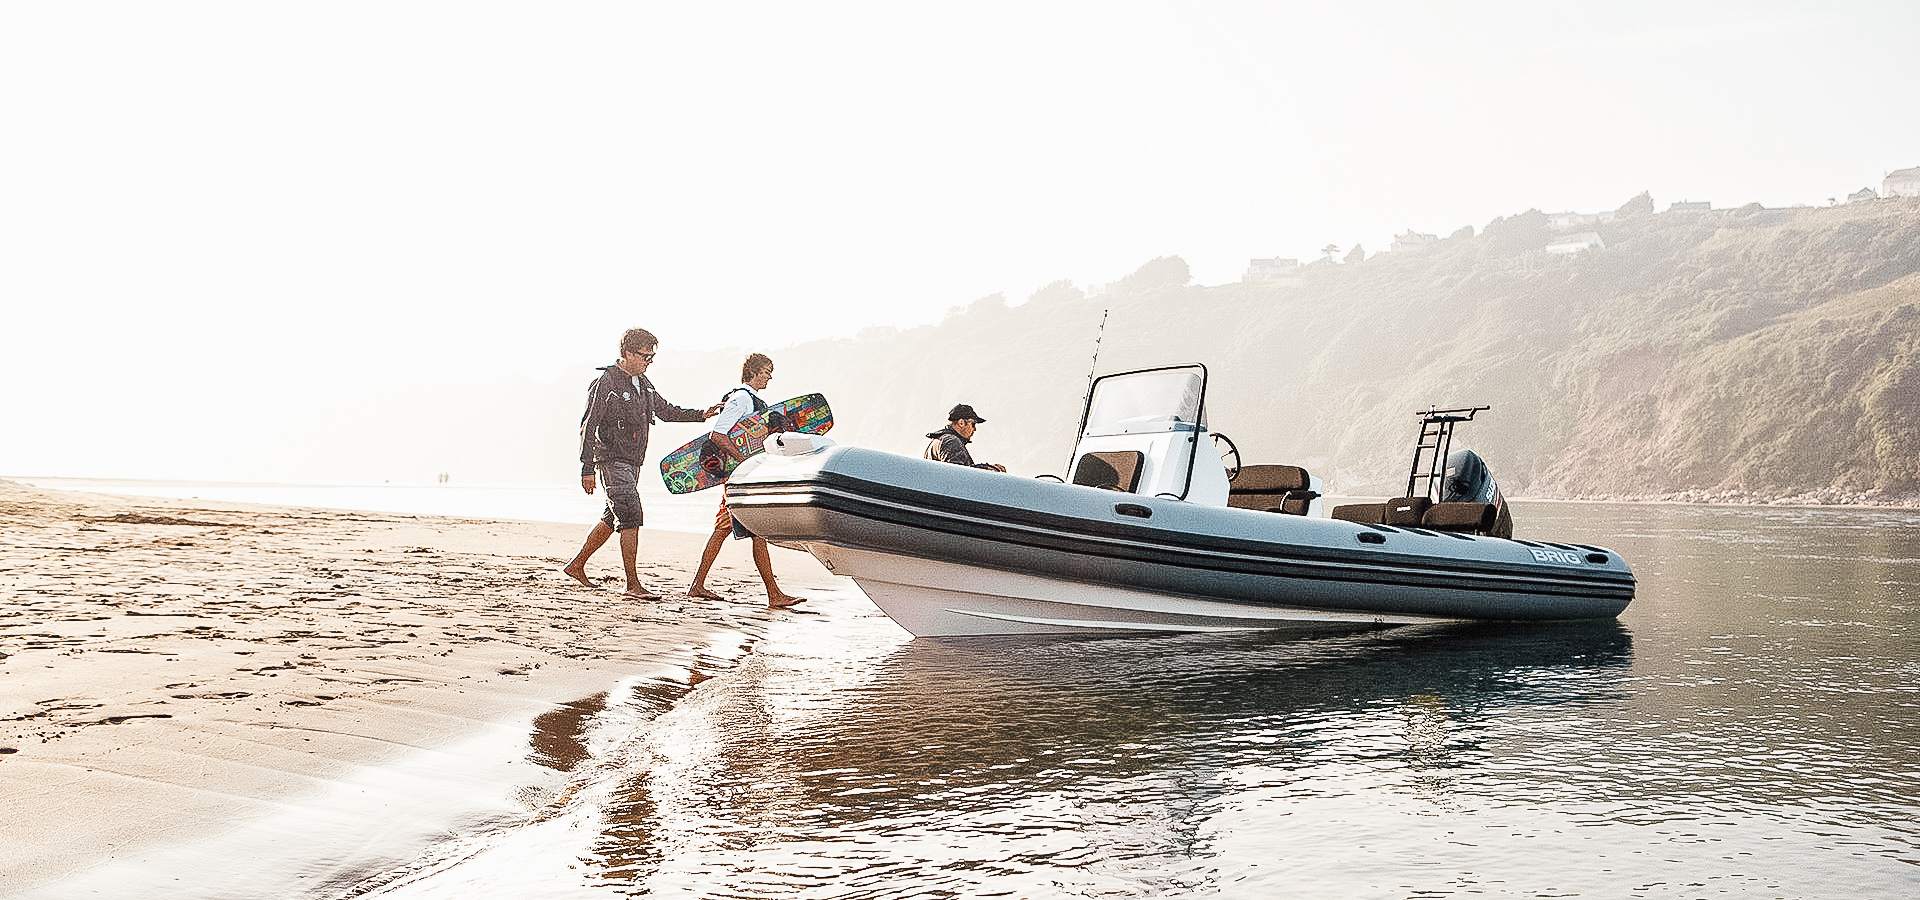 BRIG - BRIG provides a different kind of boating. Whether for family, leisure yacht, or sport–there's a BRIG model highly engineered for you. The largest rigid inflatable boat company in the world, BRIG models and styles range from 9 feet 'tenders' to 30+ feet twin engine adventure machines.